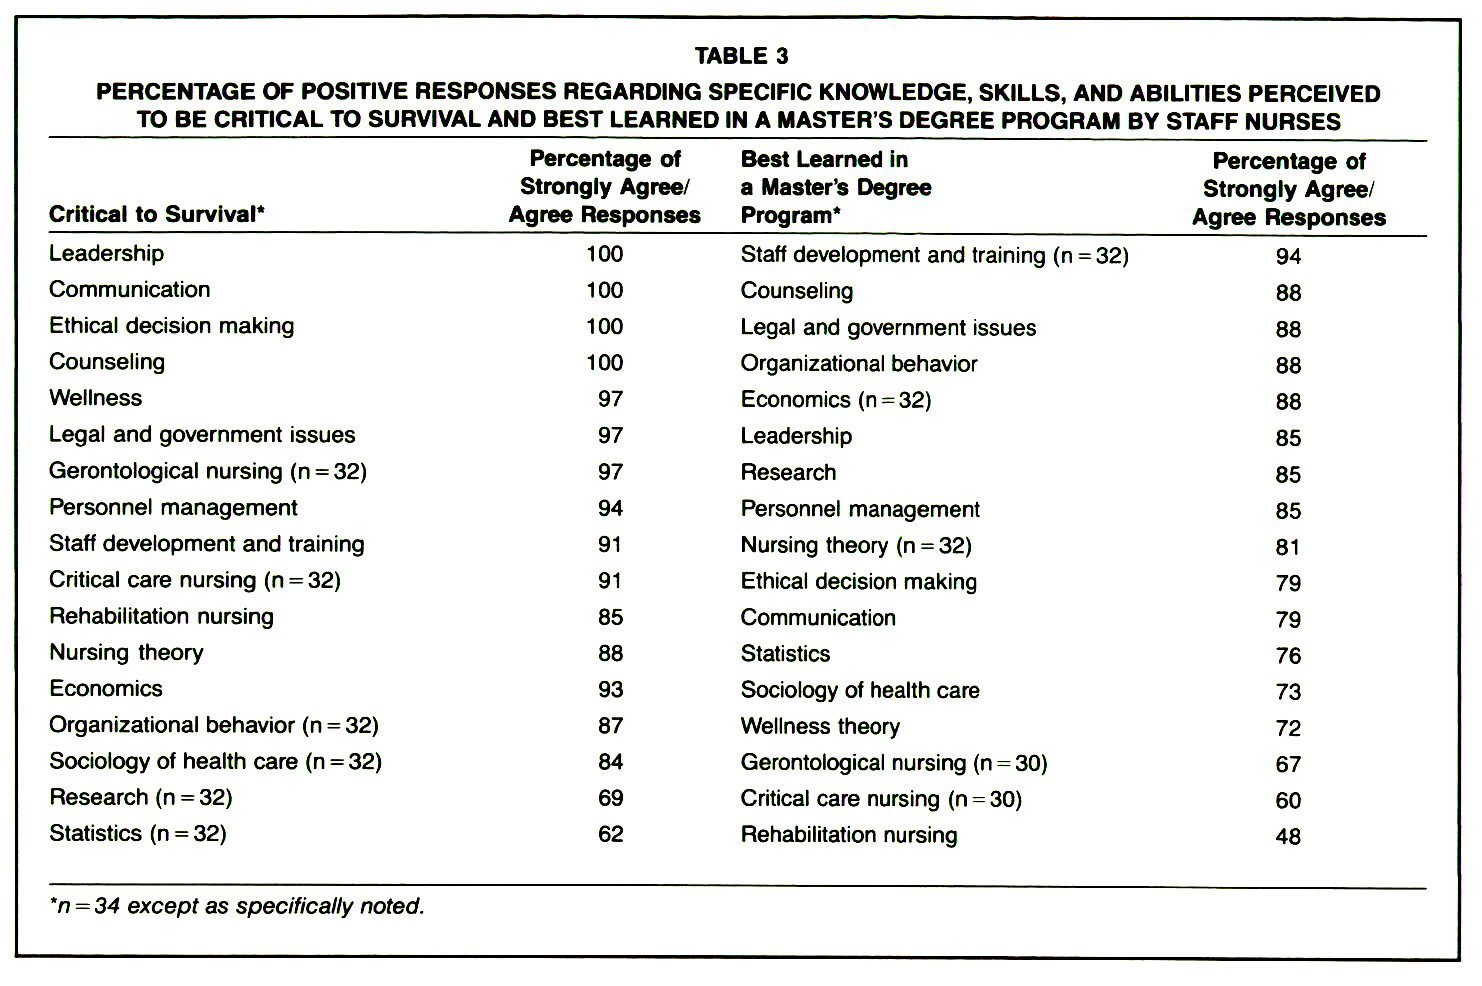 TABLE 3PERCENTAGE OF POSITIVE RESPONSES REGARDING SPECIFIC KNOWLEDGE, SKILLS, AND ABILITIES PERCEIVED TO BE CRITICAL TO SURVIVAL AND BEST LEARNED IN A MASTER'S DEGREE PROGRAM BY STAFF NURSES